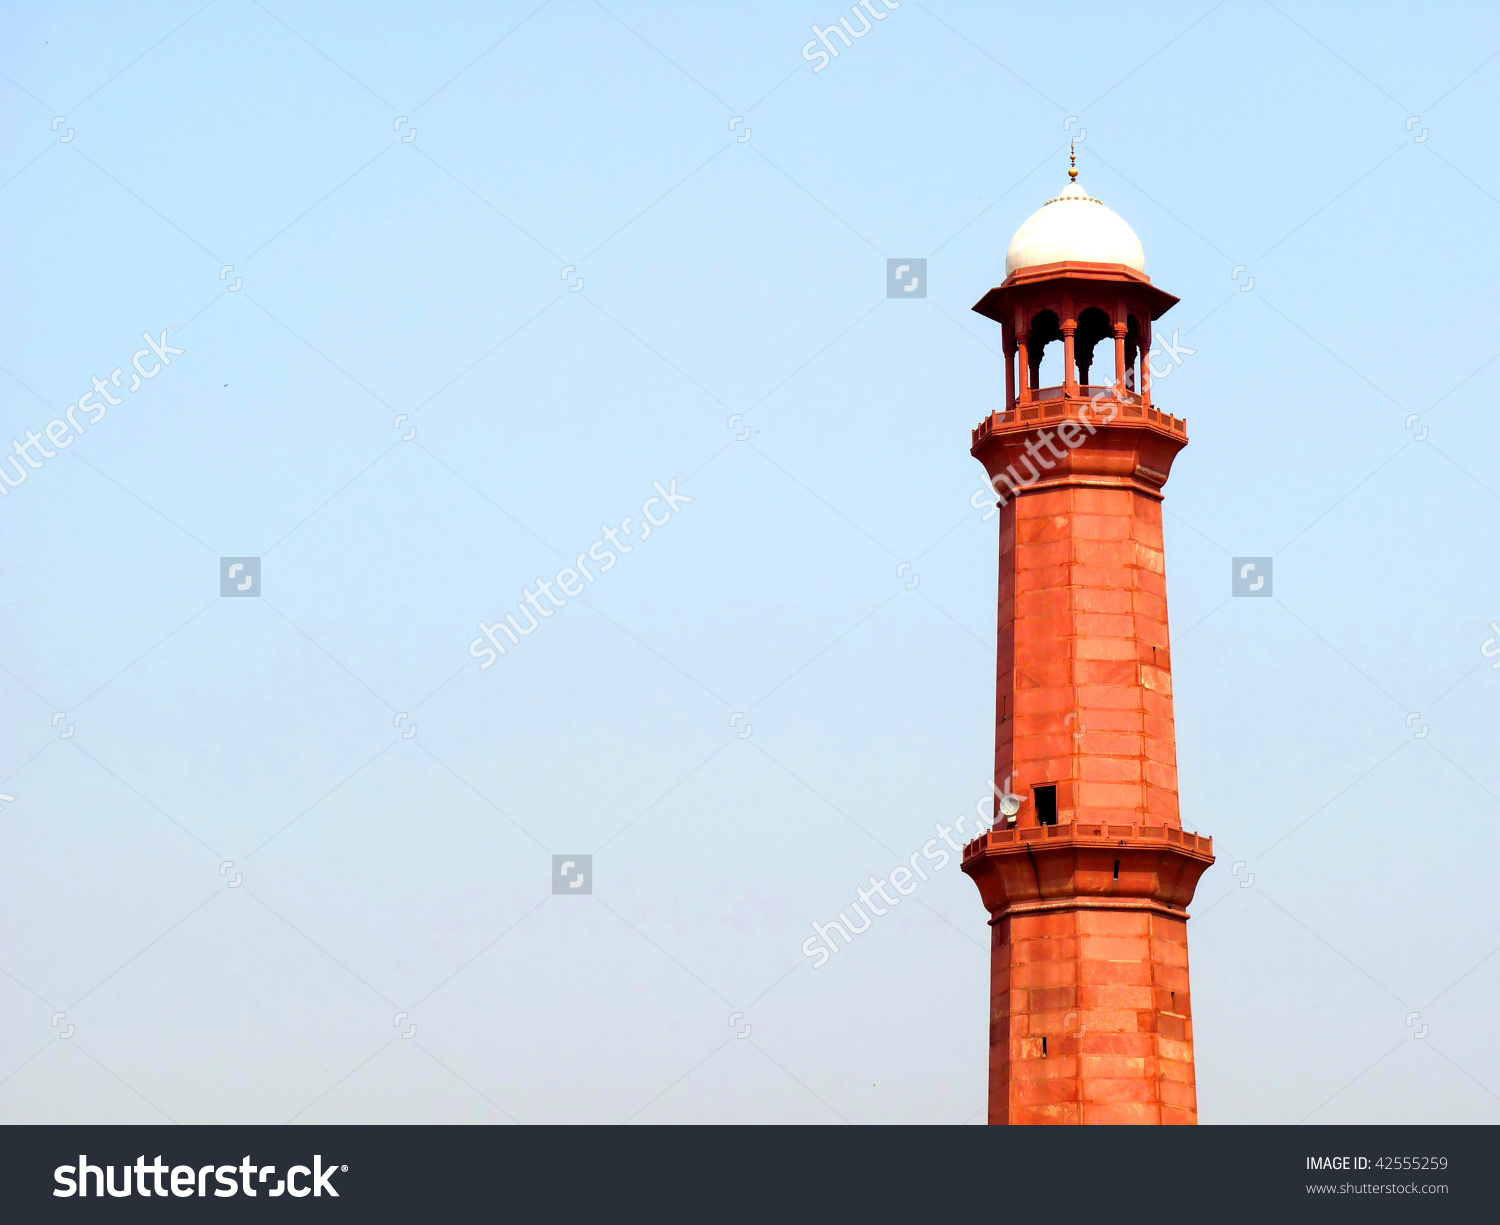 Tall Minaret Badshahi Mosque Lahore Measuring Stock Photo 42555259.